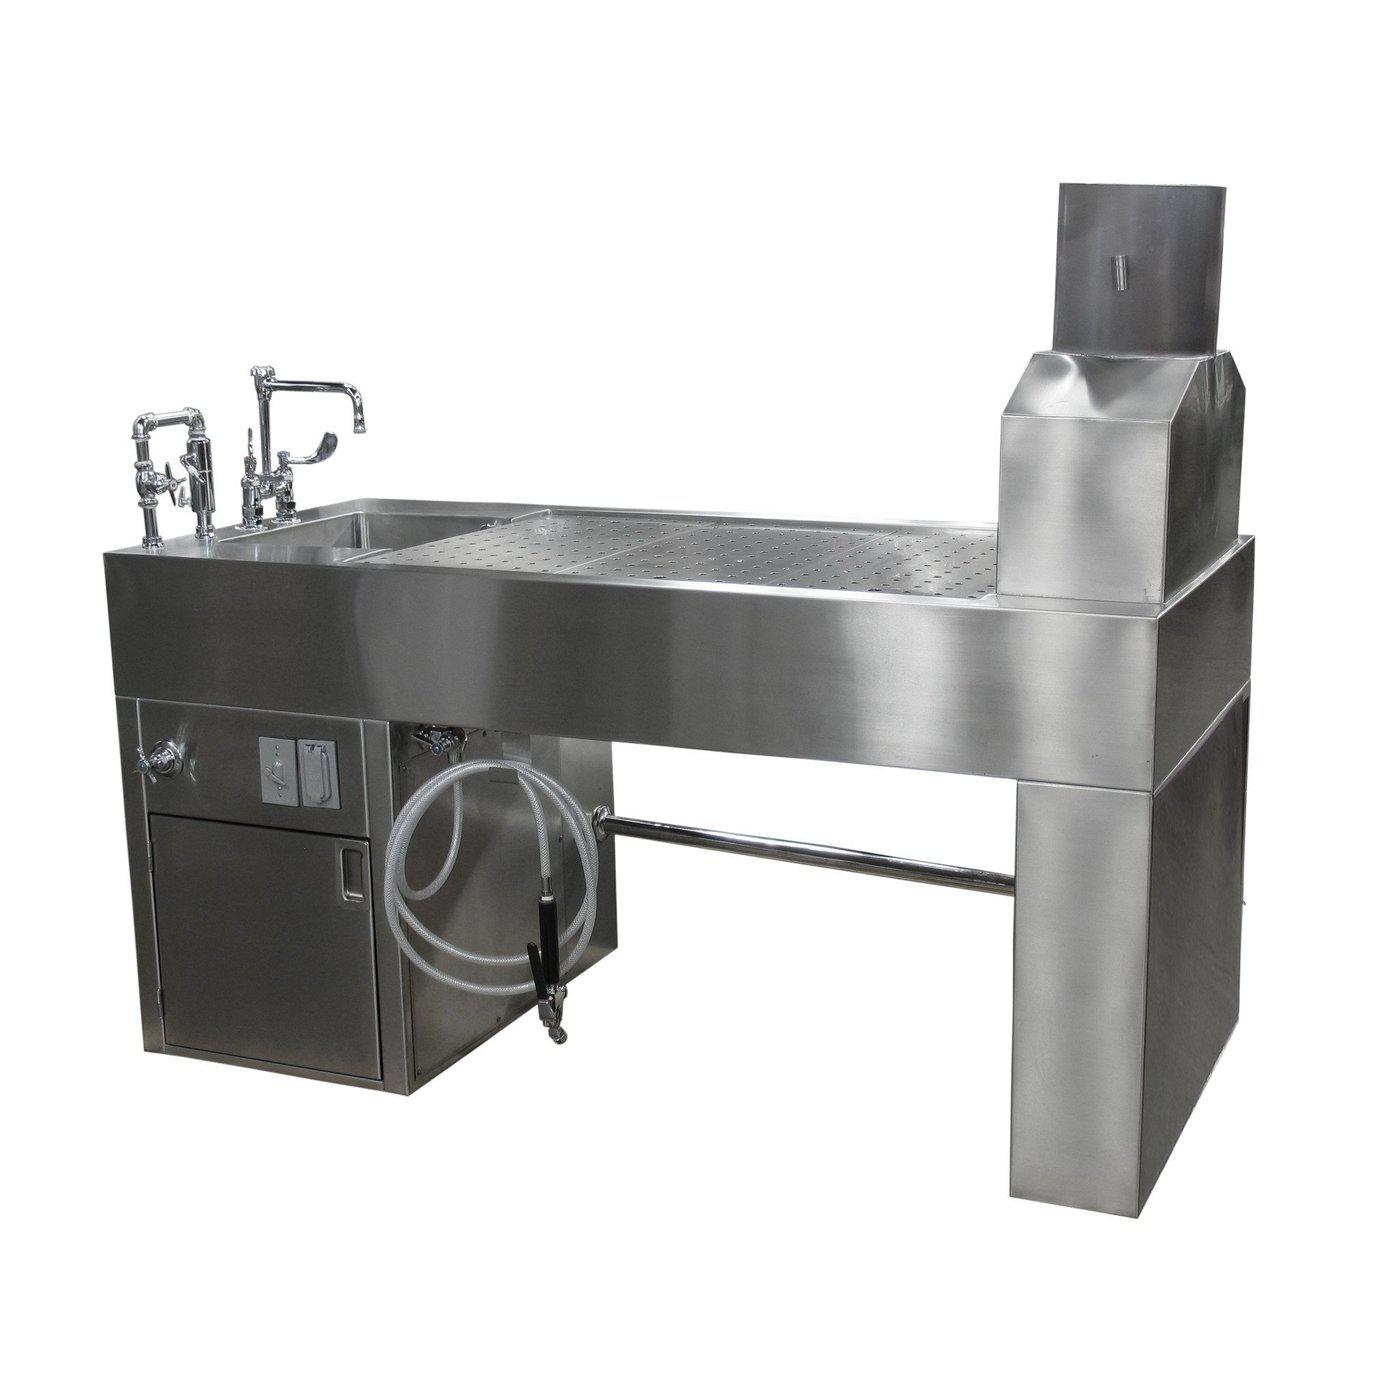 Downdraft Necropsy Workstation-Necropsy Dissection Tables-Mortech Manufacturing Company Inc. Quality Stainless Steel Autopsy, Morgue, Funeral Home, Necropsy, Veterinary / Anatomy, Dissection Equipment and Accessories